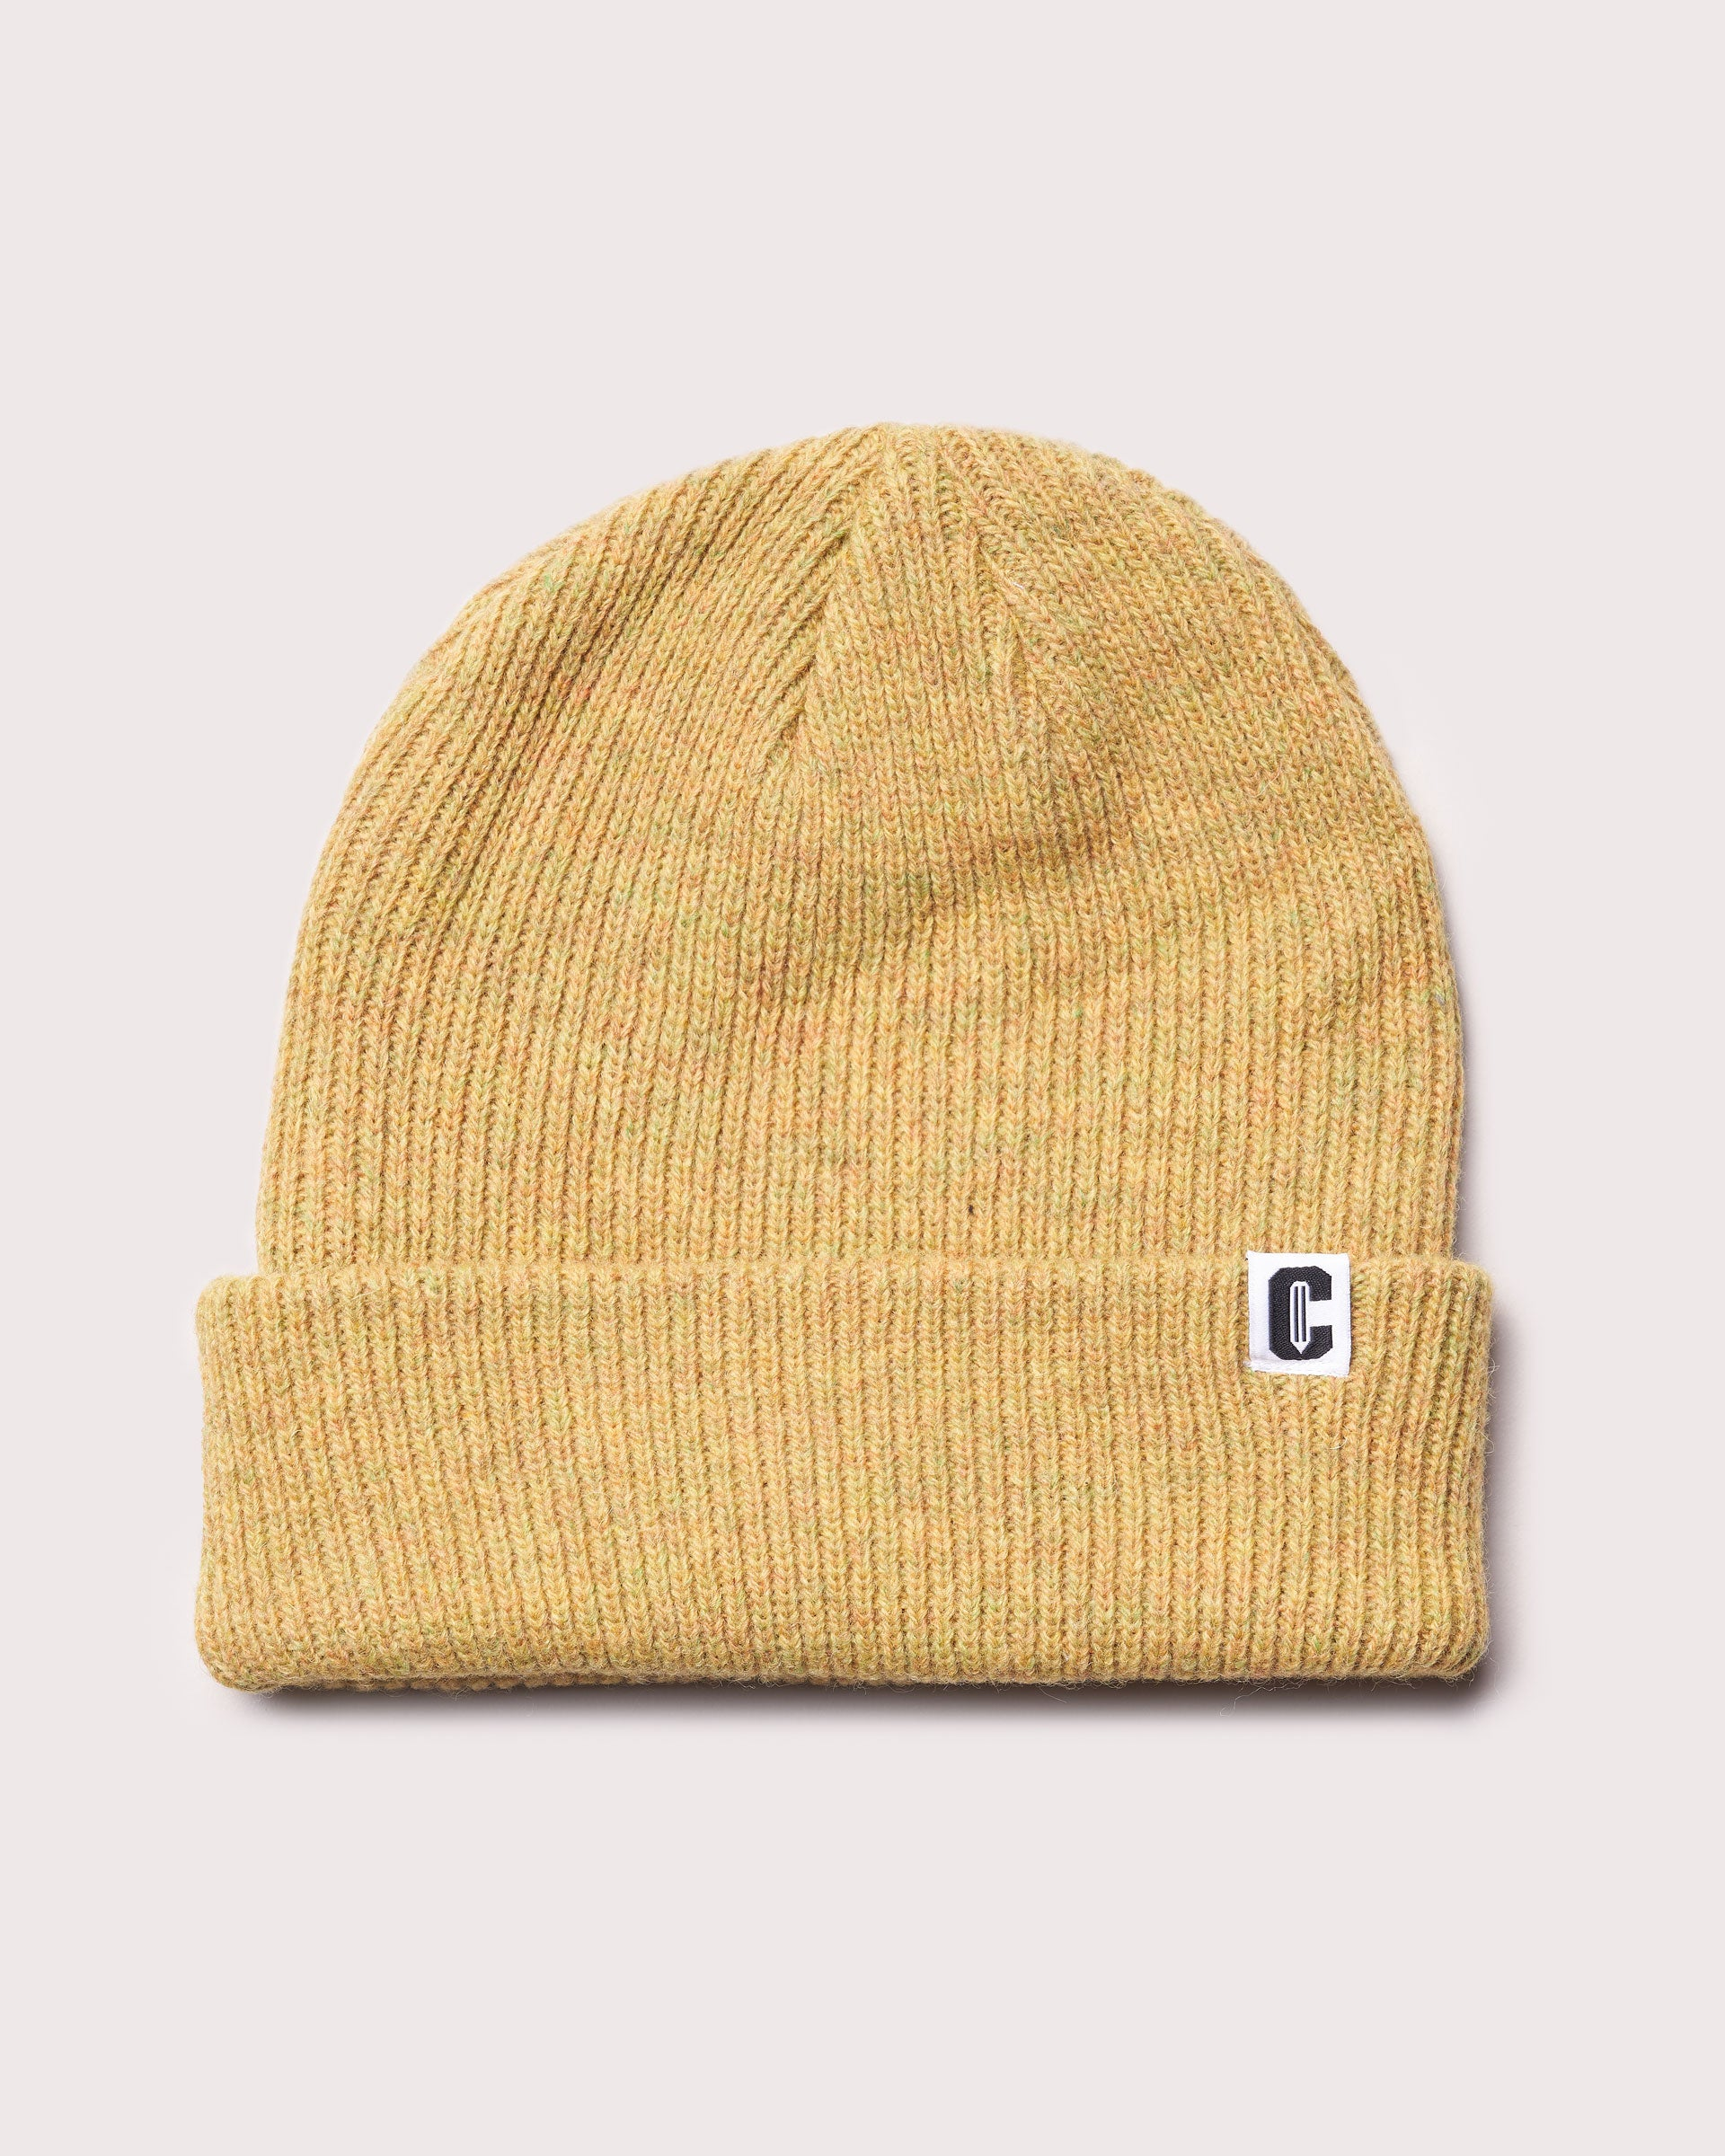 A mustard yellow merino wool cuffed beanie with a woven label featuring the Coursework C logo.